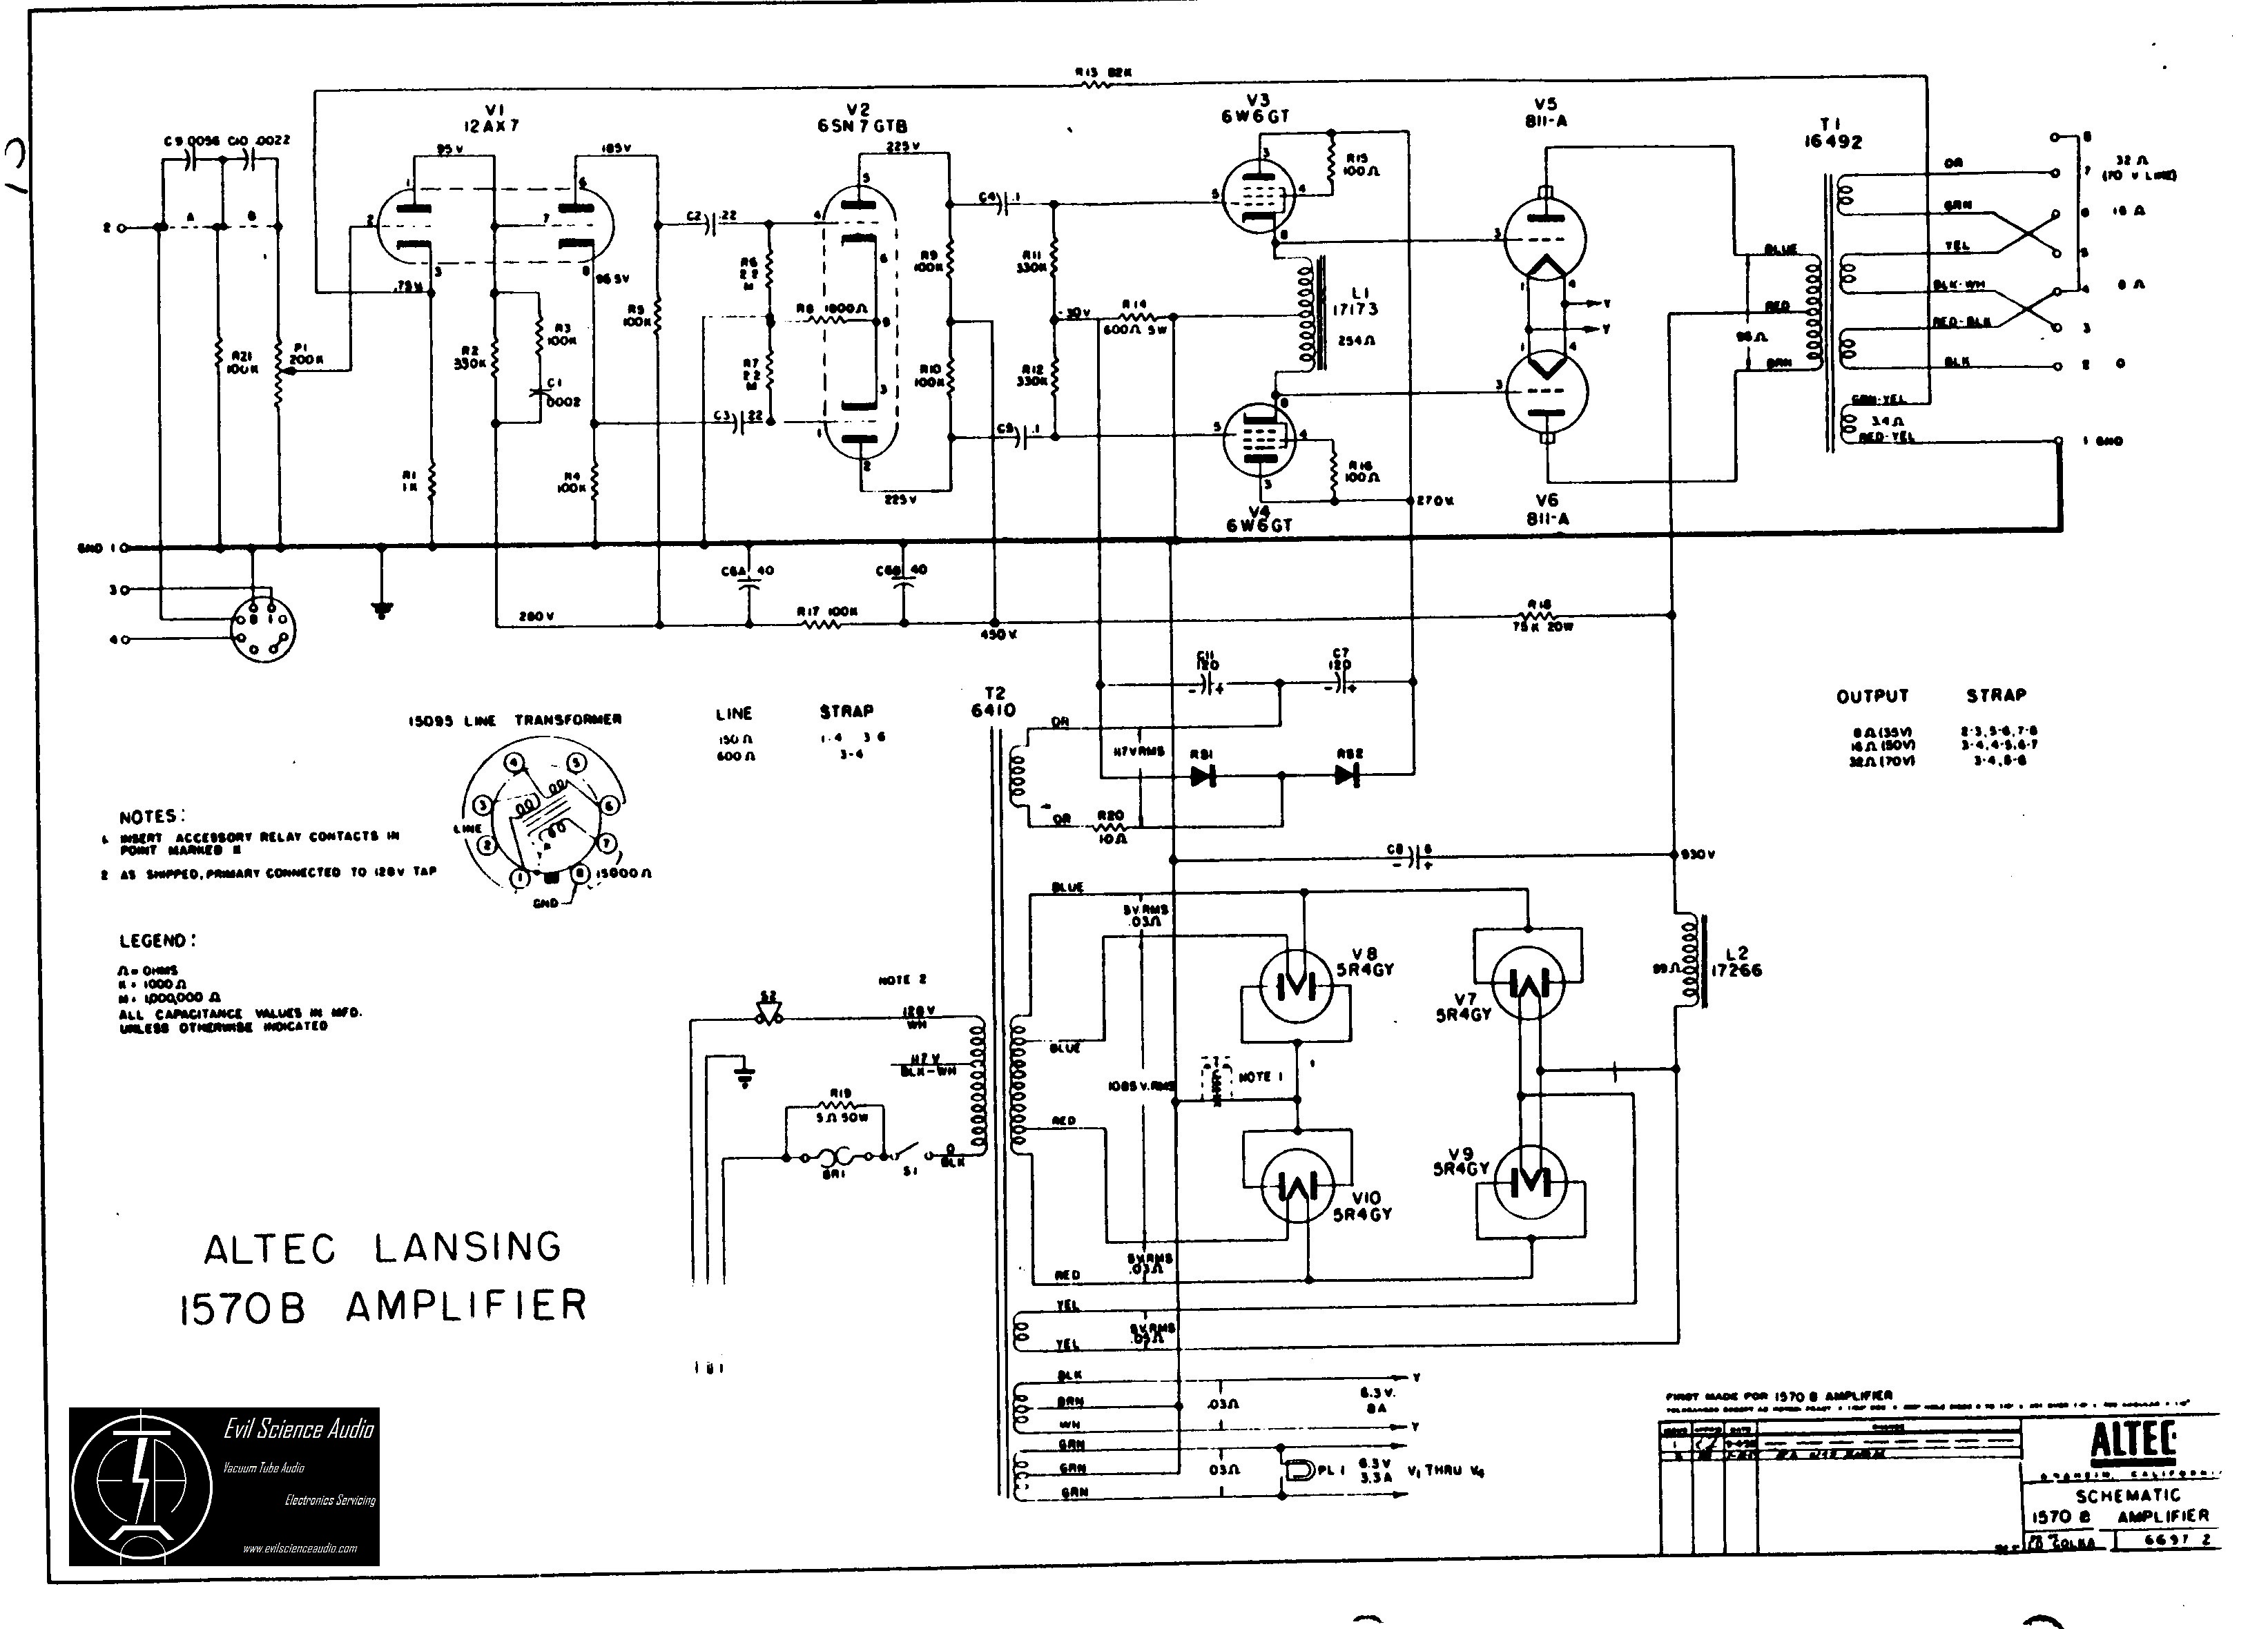 altec lansing 1570b schematic hi fi schematics evil science audio Altec Bucket Wiring-Diagram at aneh.co